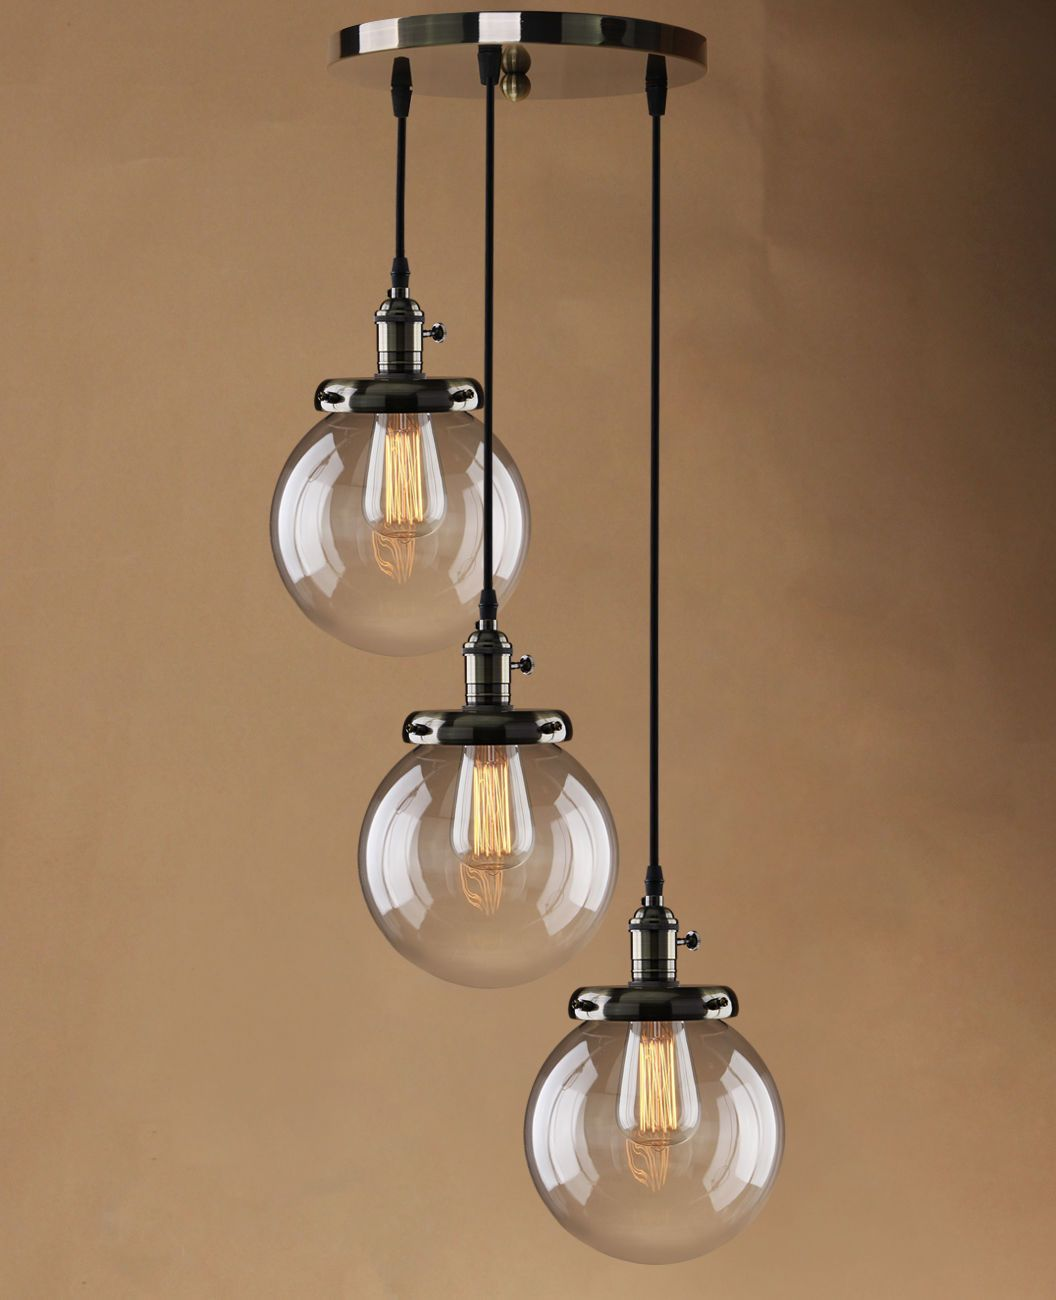 Retro Vintage Cluster Hanging Ceiling Lights Globe 3 Glass Shades Pendant  Lamp In Home, Furniture